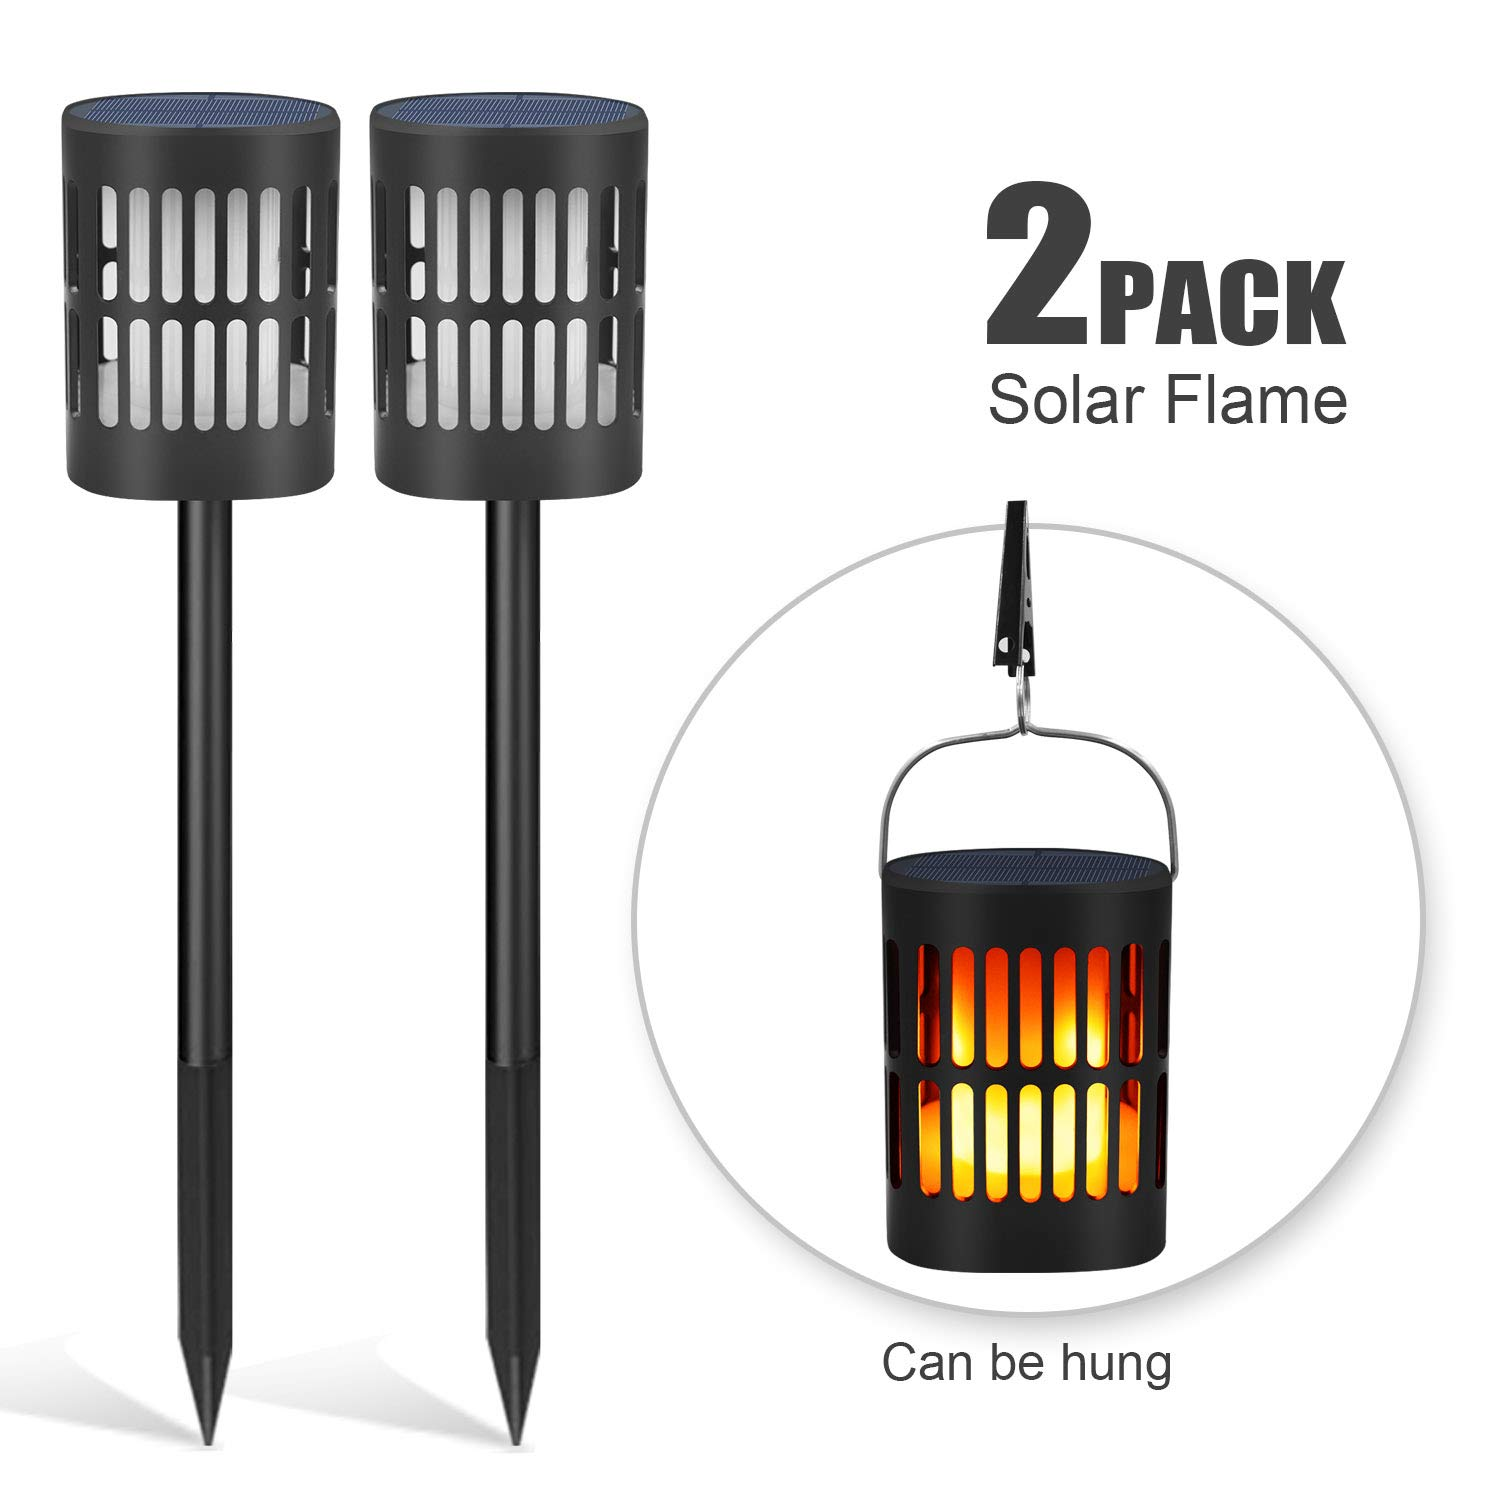 Solar Flame Lanterns Flickering Flames Torches Lights USB Charging Multipurpose Waterproof Solar Lights Outdoor Hanging Lanterns Lighting Dusk to Dawn Auto On/Off for Garden Patio Driveway 2 Pack